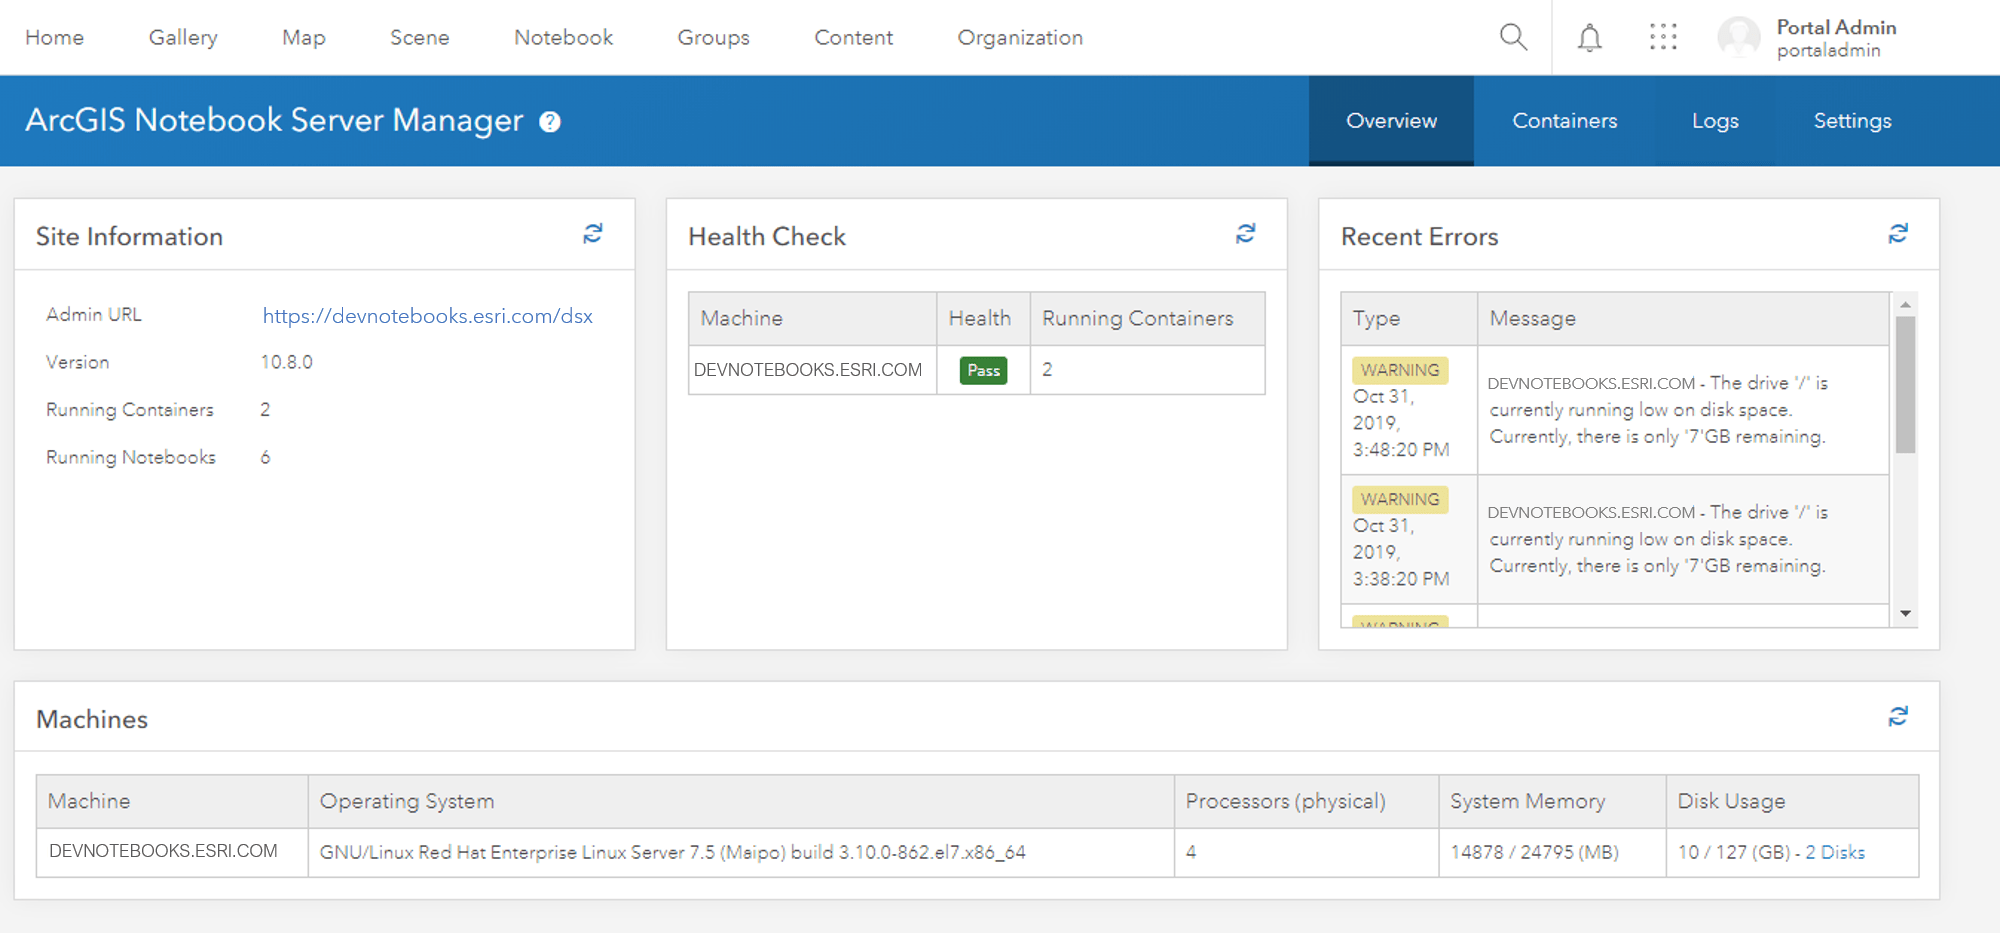 Image of the Overview page of the Notebook Server manager app